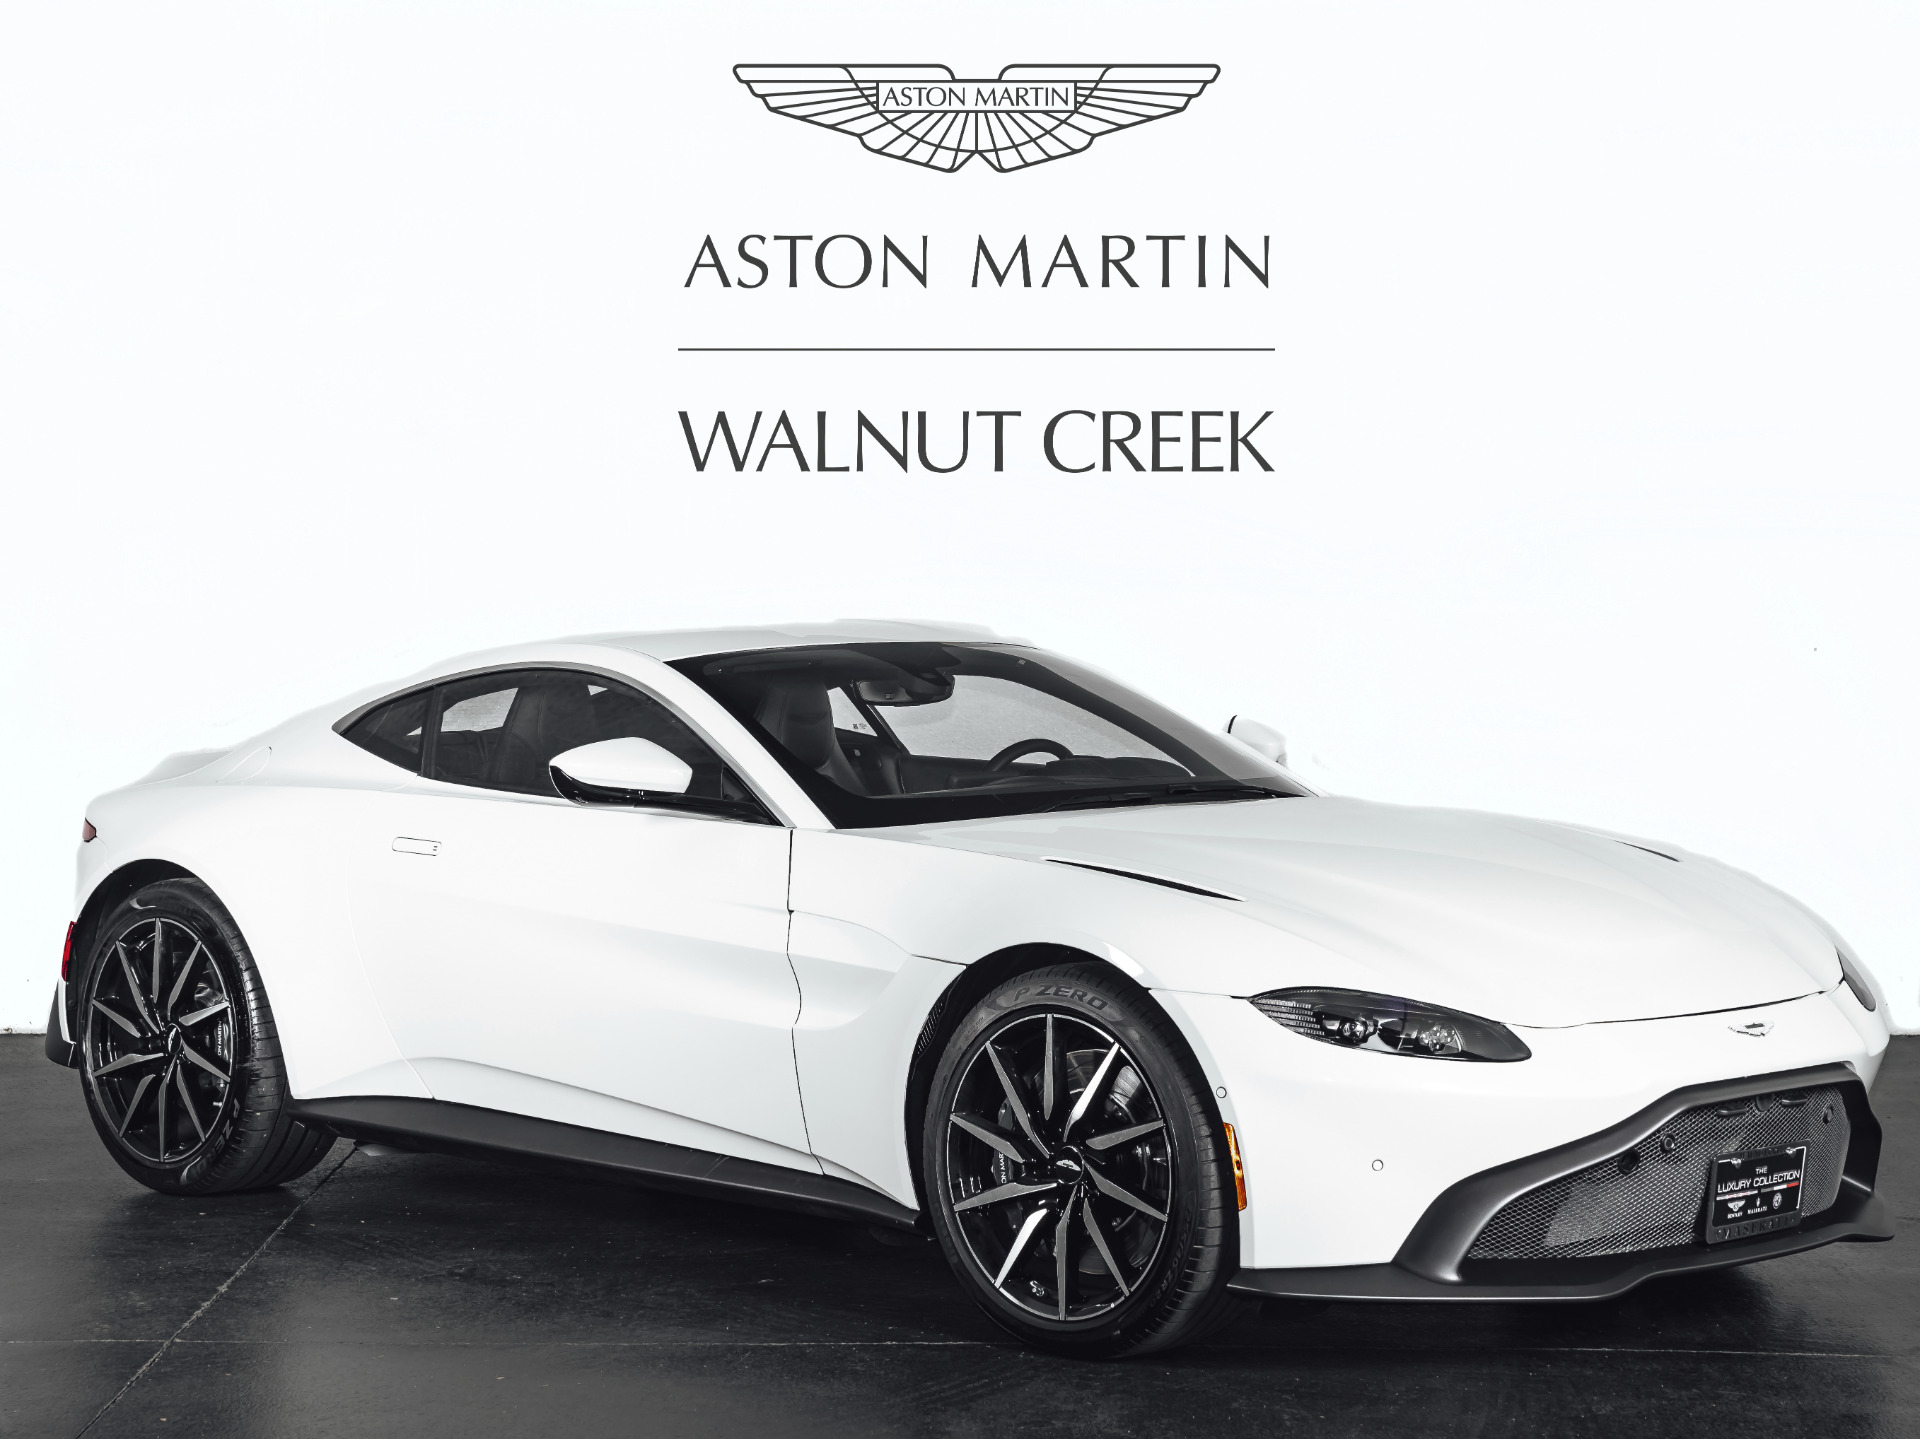 New 2020 Aston Martin Vantage Coupe For Sale 167 867 The Luxury Collection Walnut Creek Stock Aml003